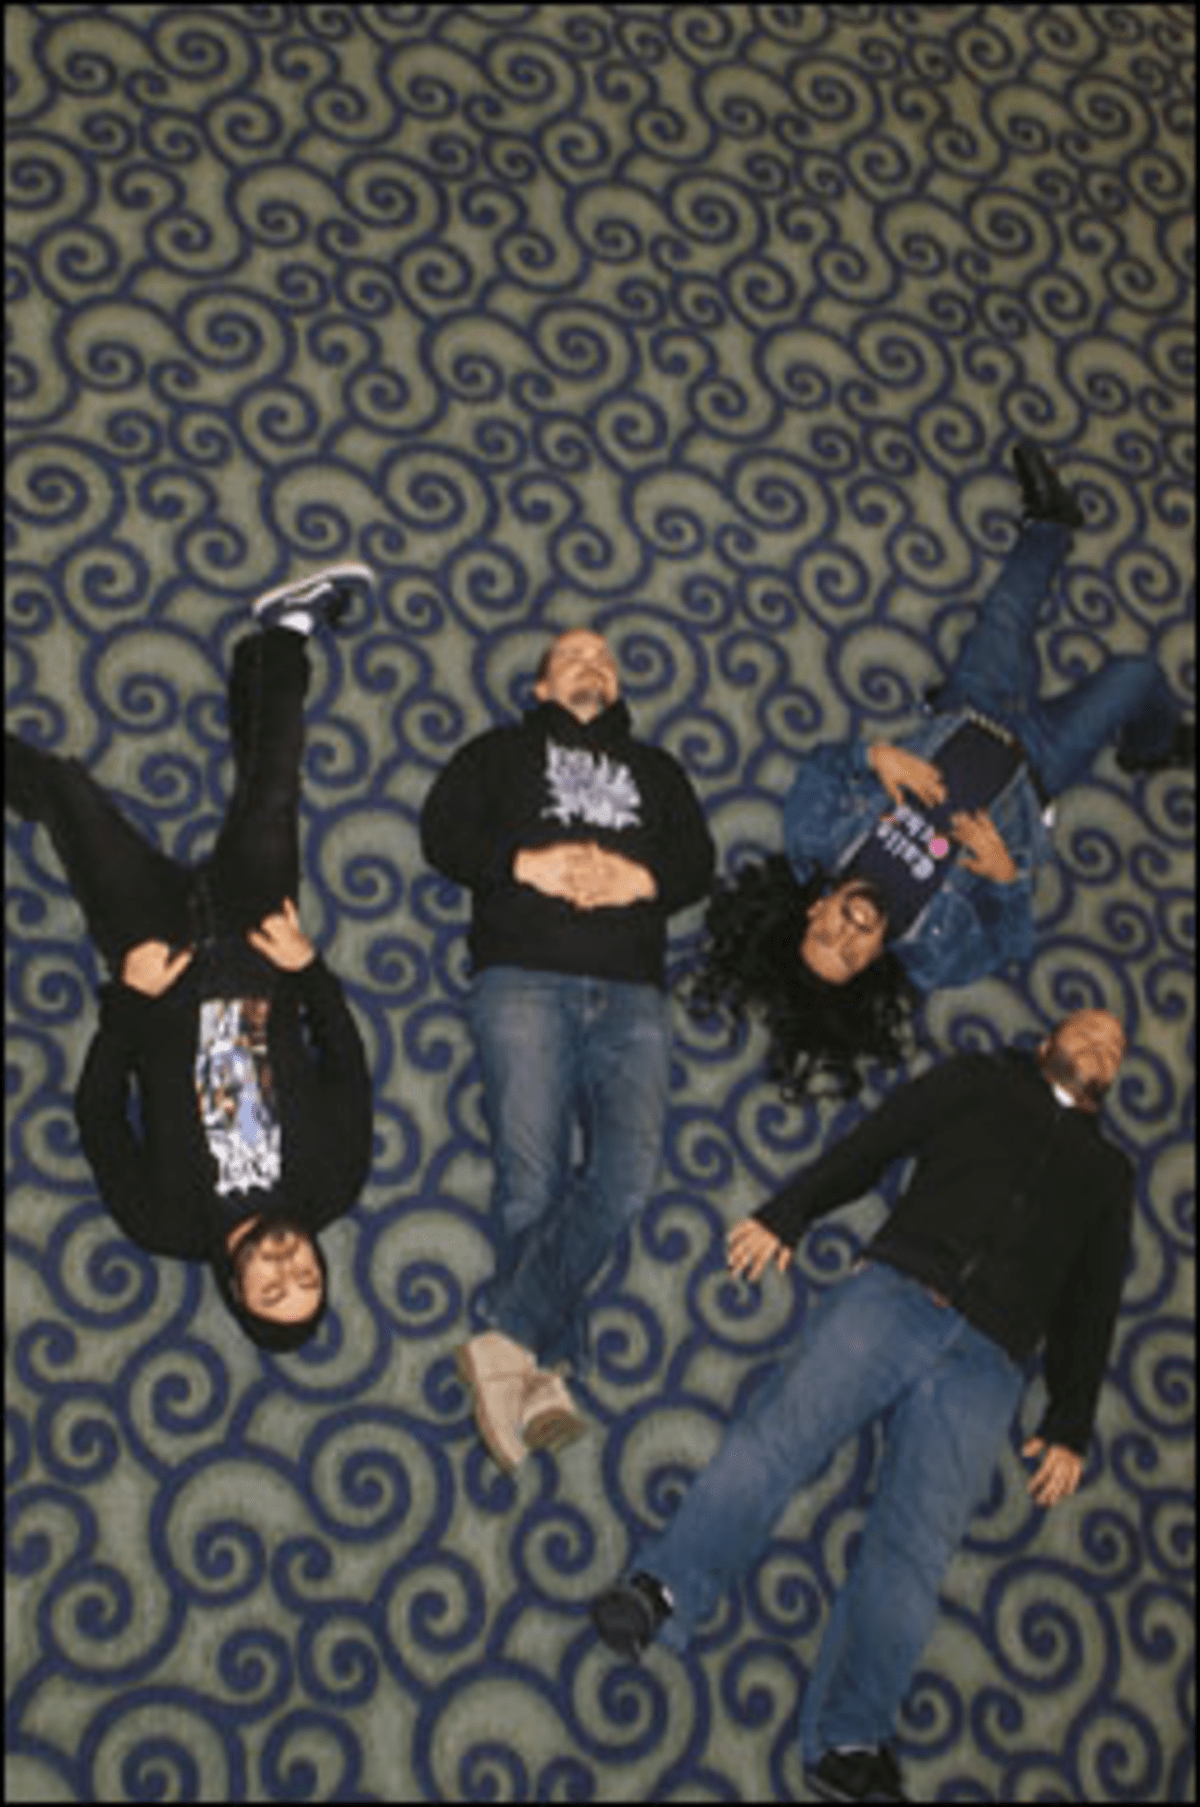 Four on the Floor: Torche keeps its art metal simple.